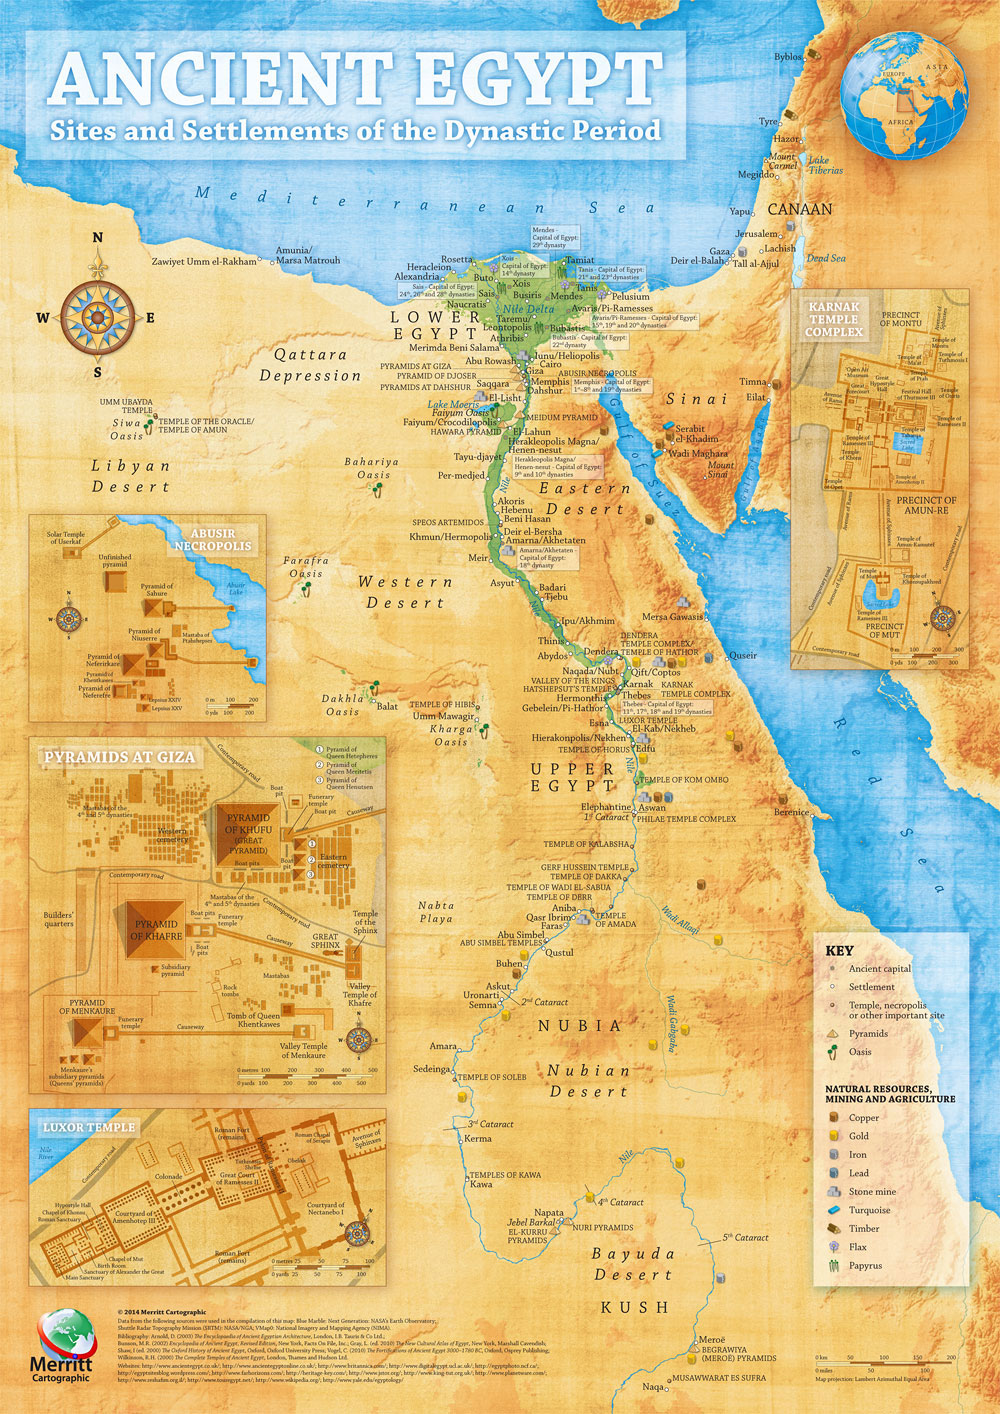 Ancient Egypt Map   Illustrative overview map highlighting the